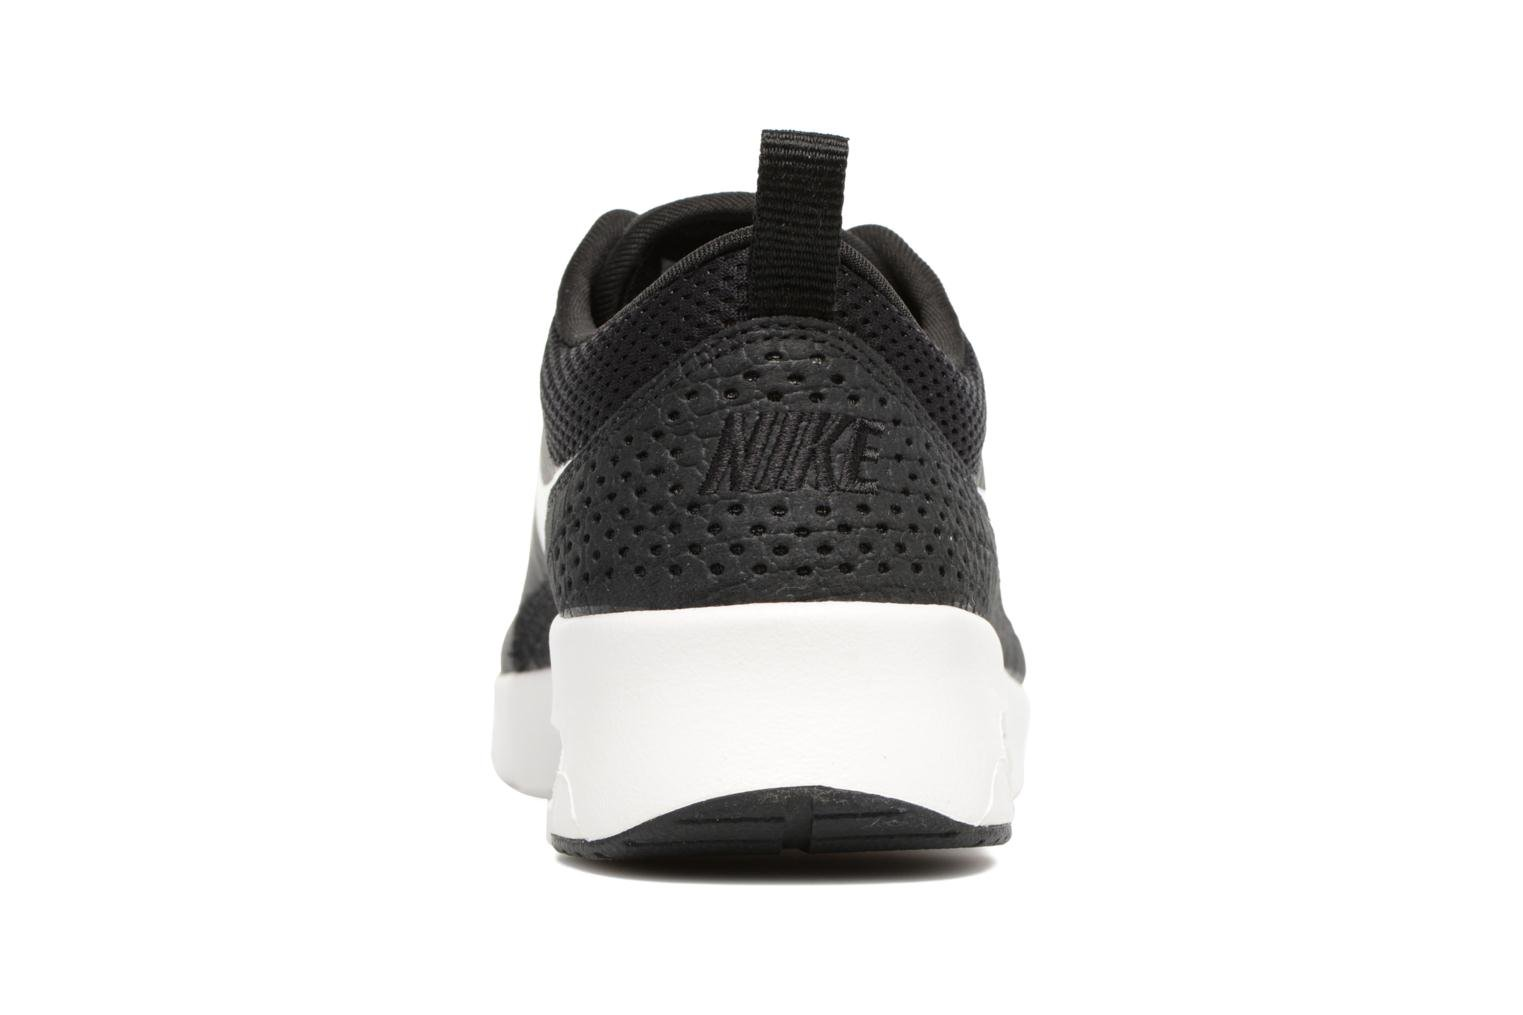 Wmns Nike Air Max Thea Black/Summit White